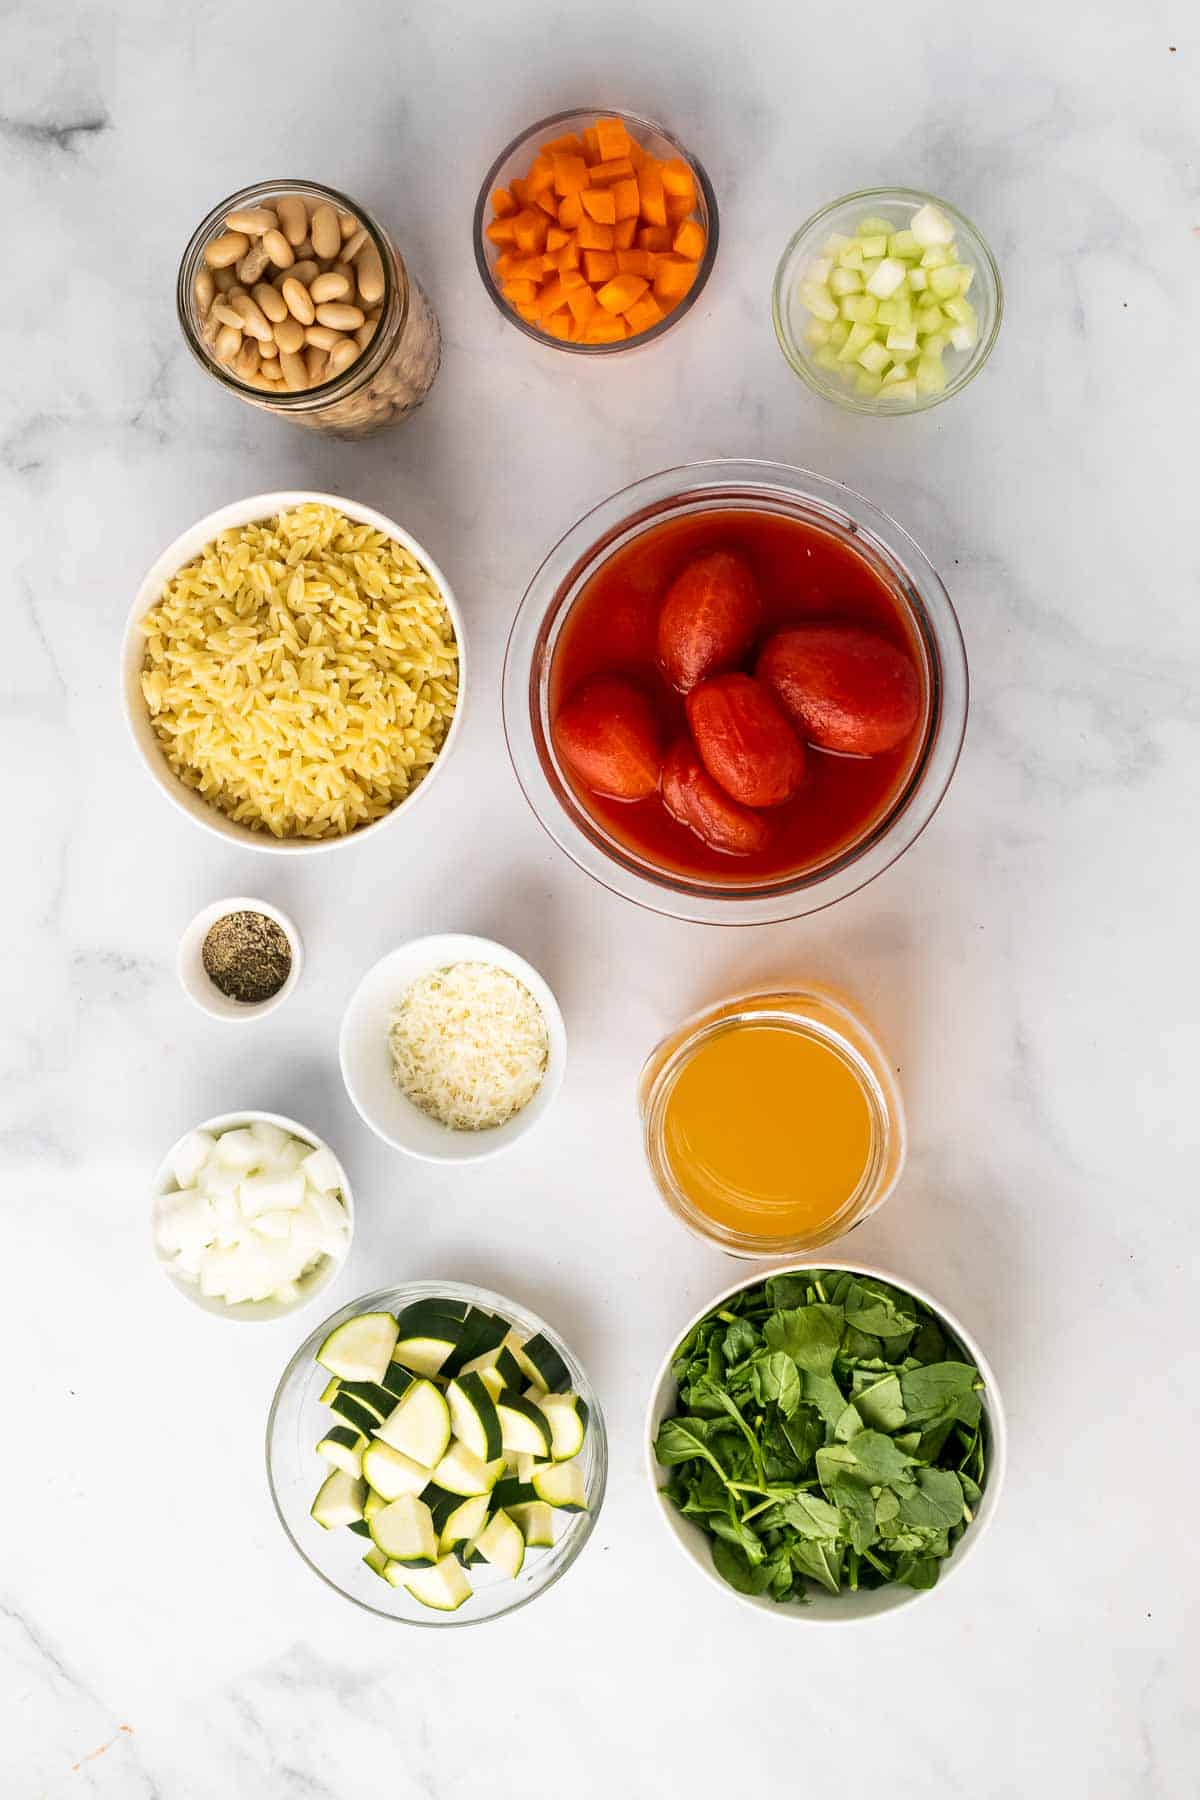 Ingredients for the recipe laid out on a marble surface